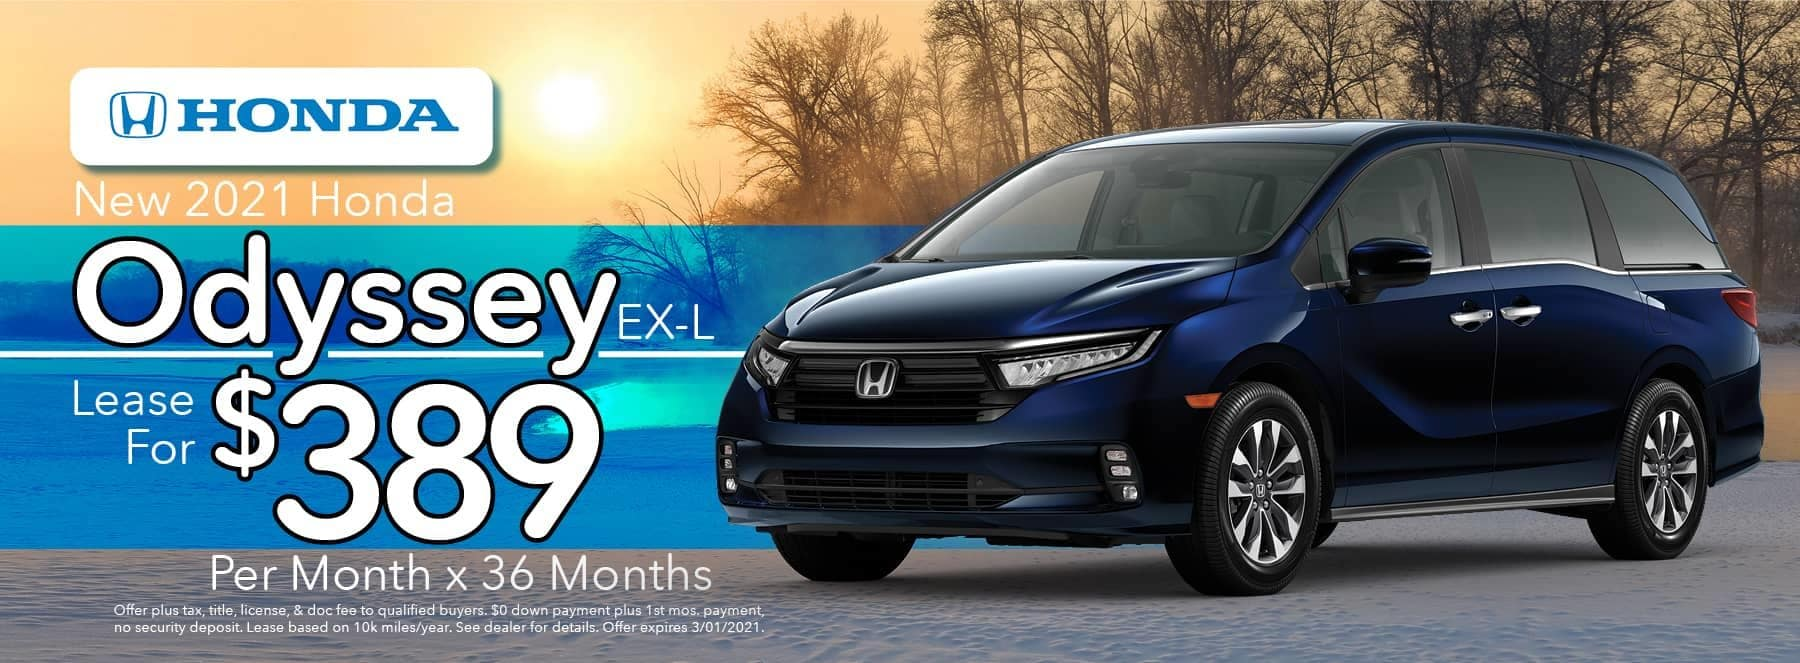 New 2020 Honda Odyssey EX-L - Lease for $389 per Month for 36 Months